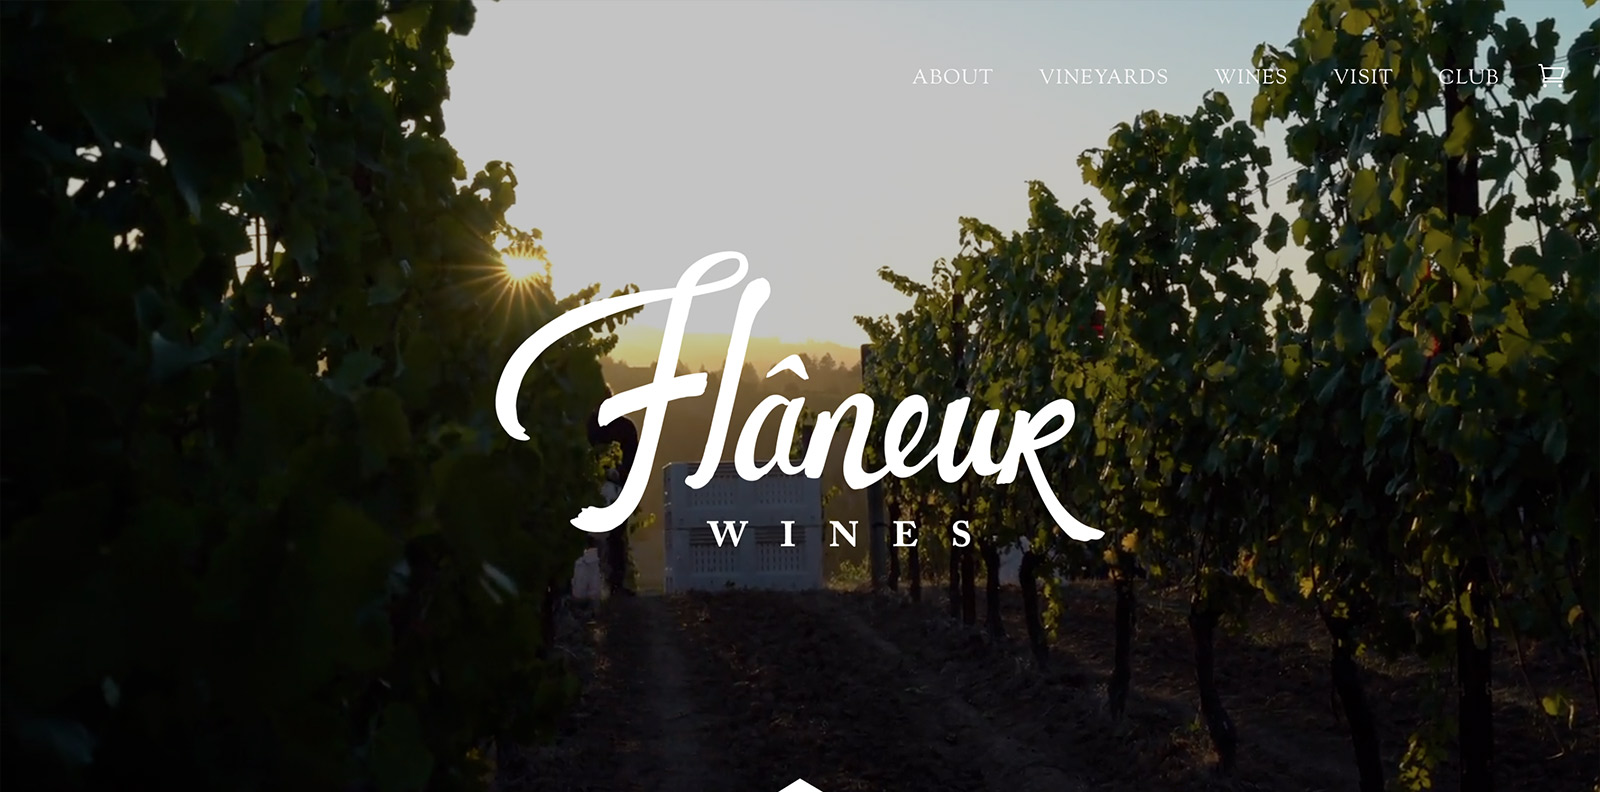 Flaneur Wines's website